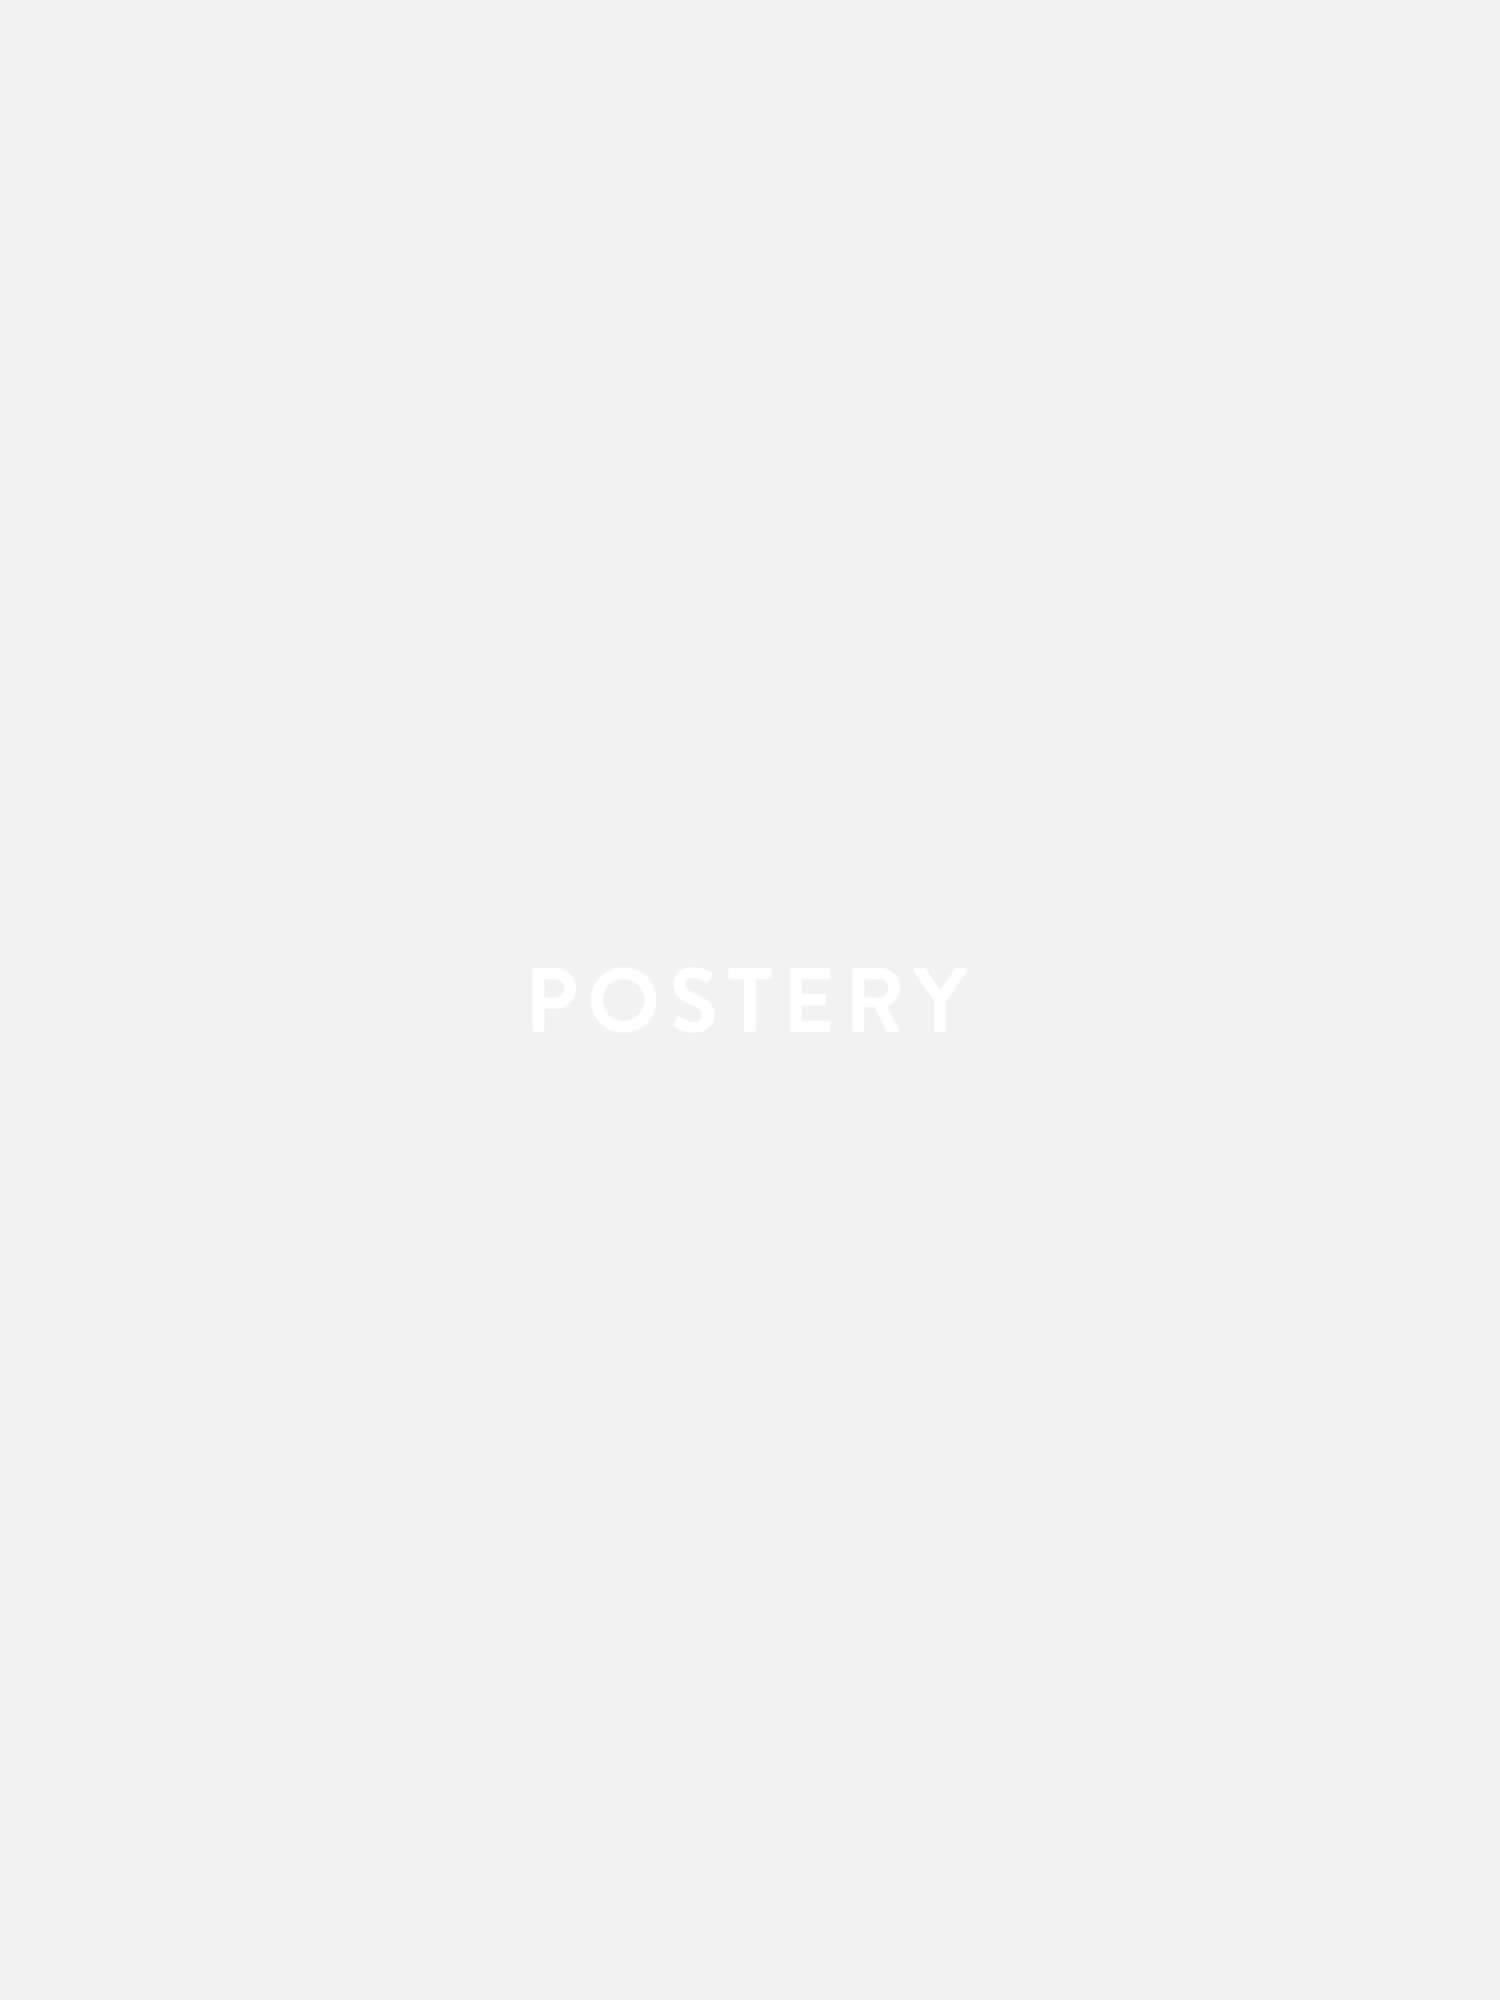 Butchers Beef Cuts Poster